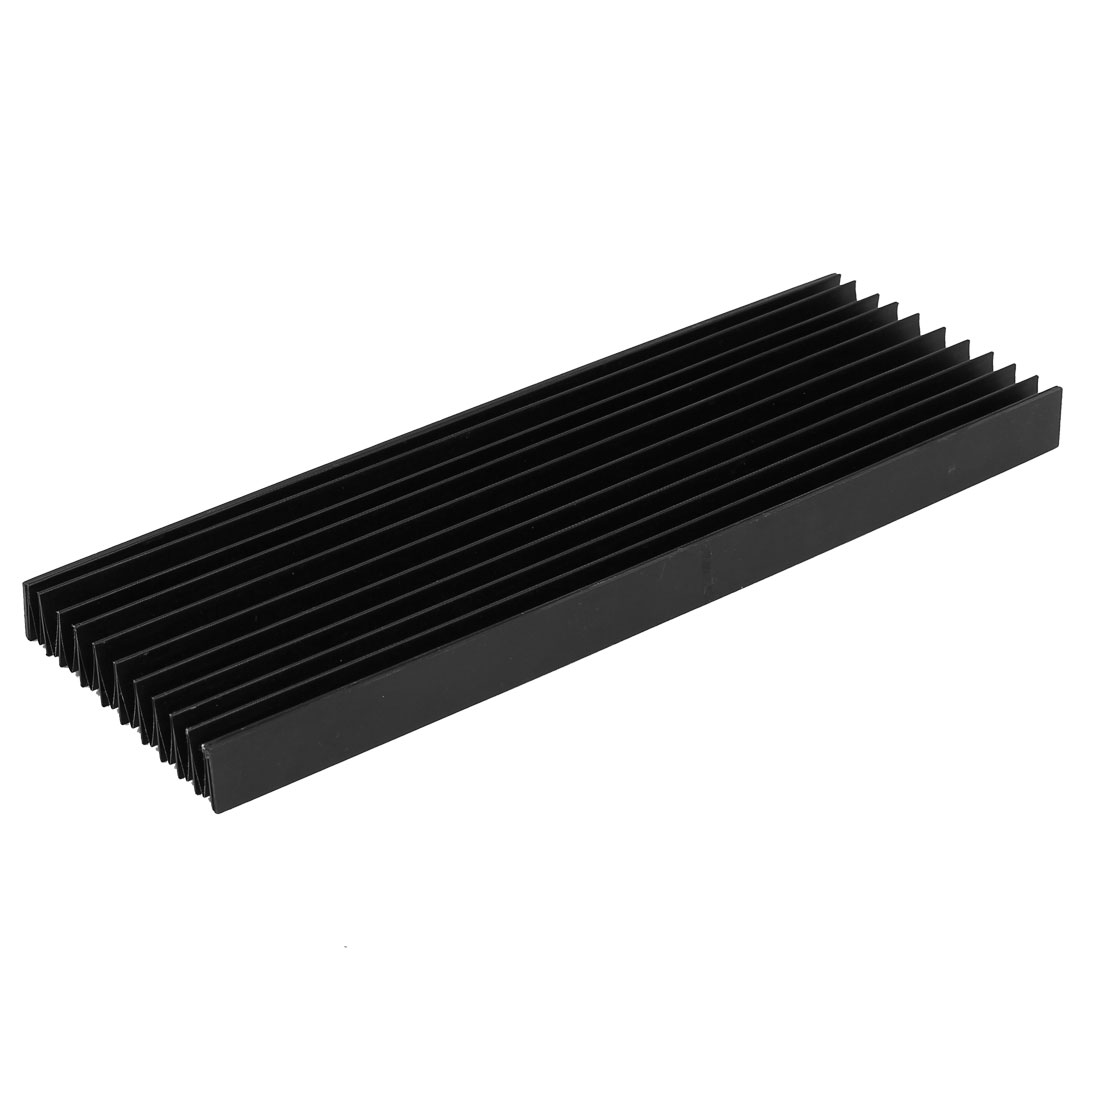 CNC Machine Fitting Foldable Accordion Dust Protective Cover Black 300mm x 20mm